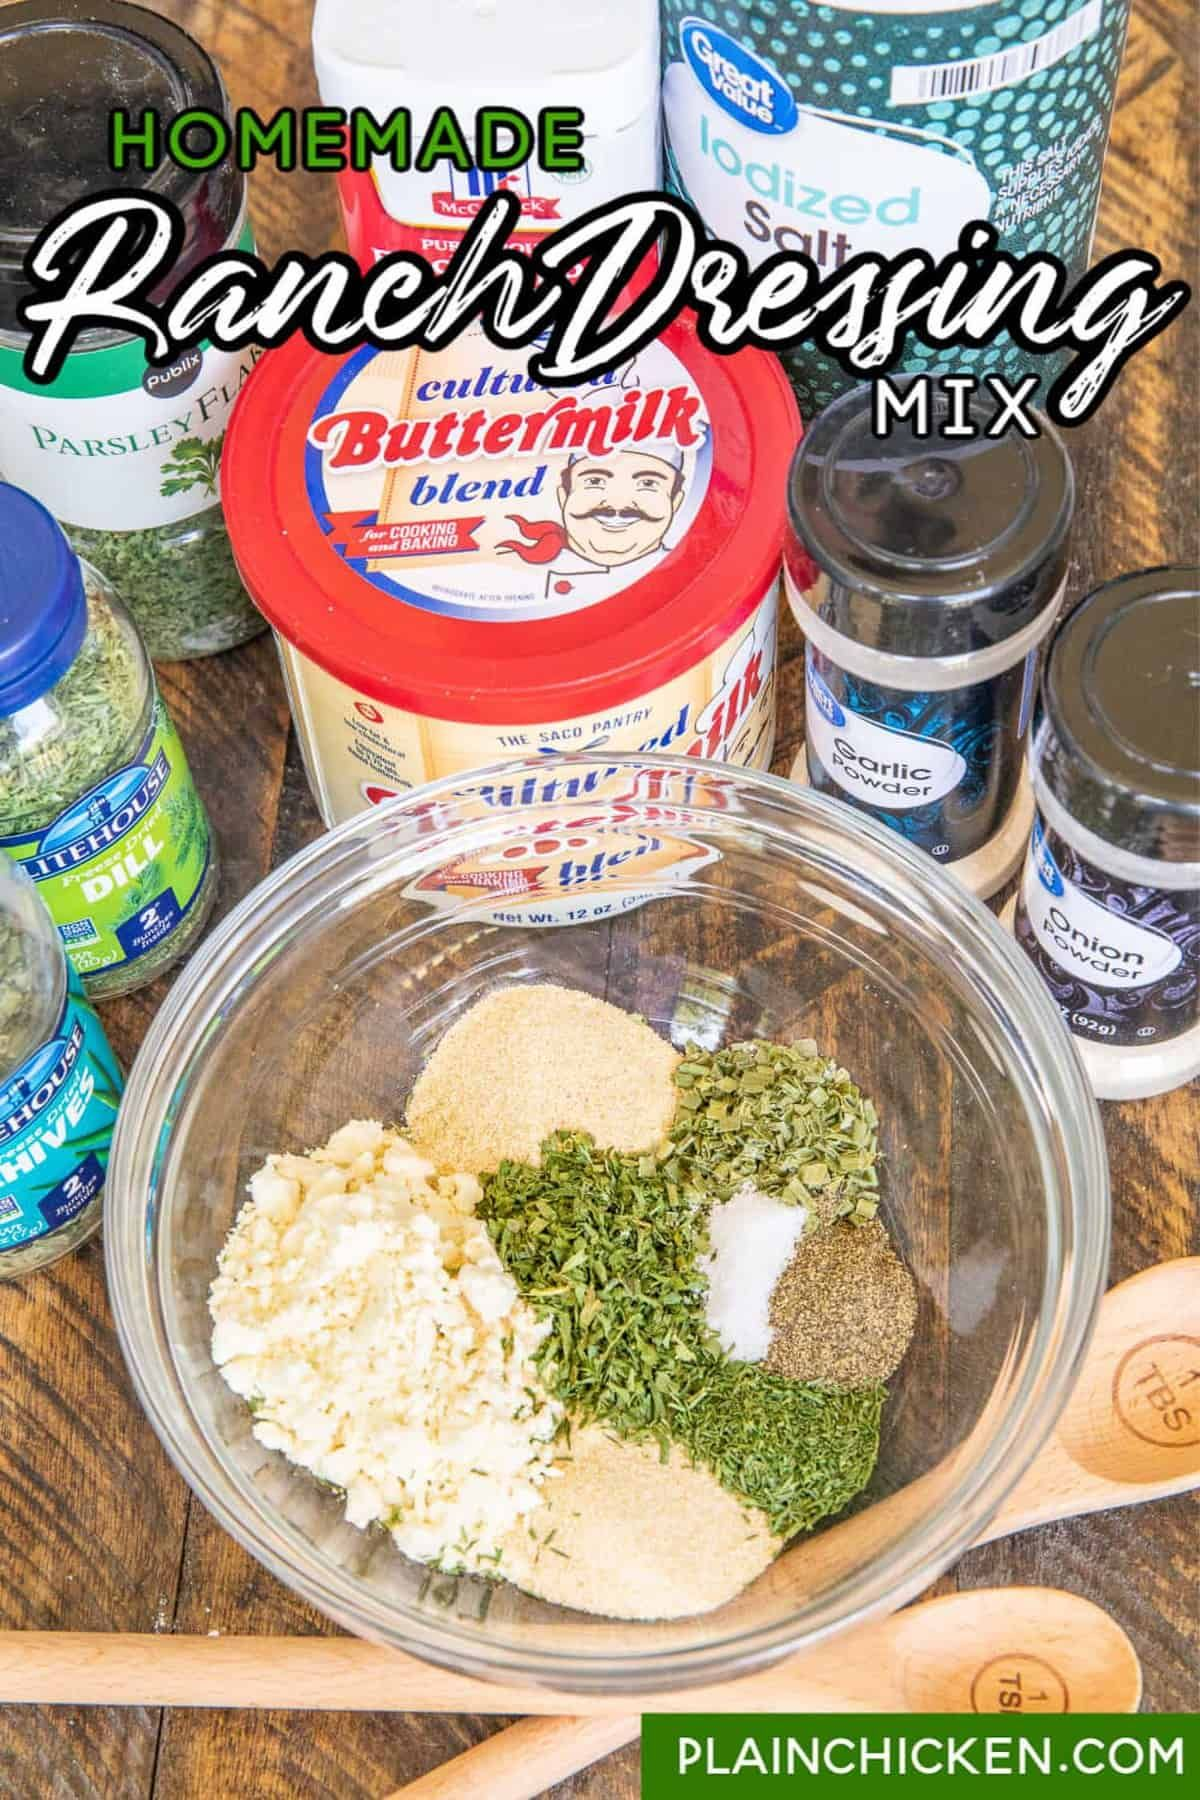 Homemade Ranch Dressing Mix Ditch The Packets For An Easy Homemade Dressing Mix Without Al In 2020 Homemade Ranch Dressing Mix Homemade Ranch Homemade Ranch Dressing